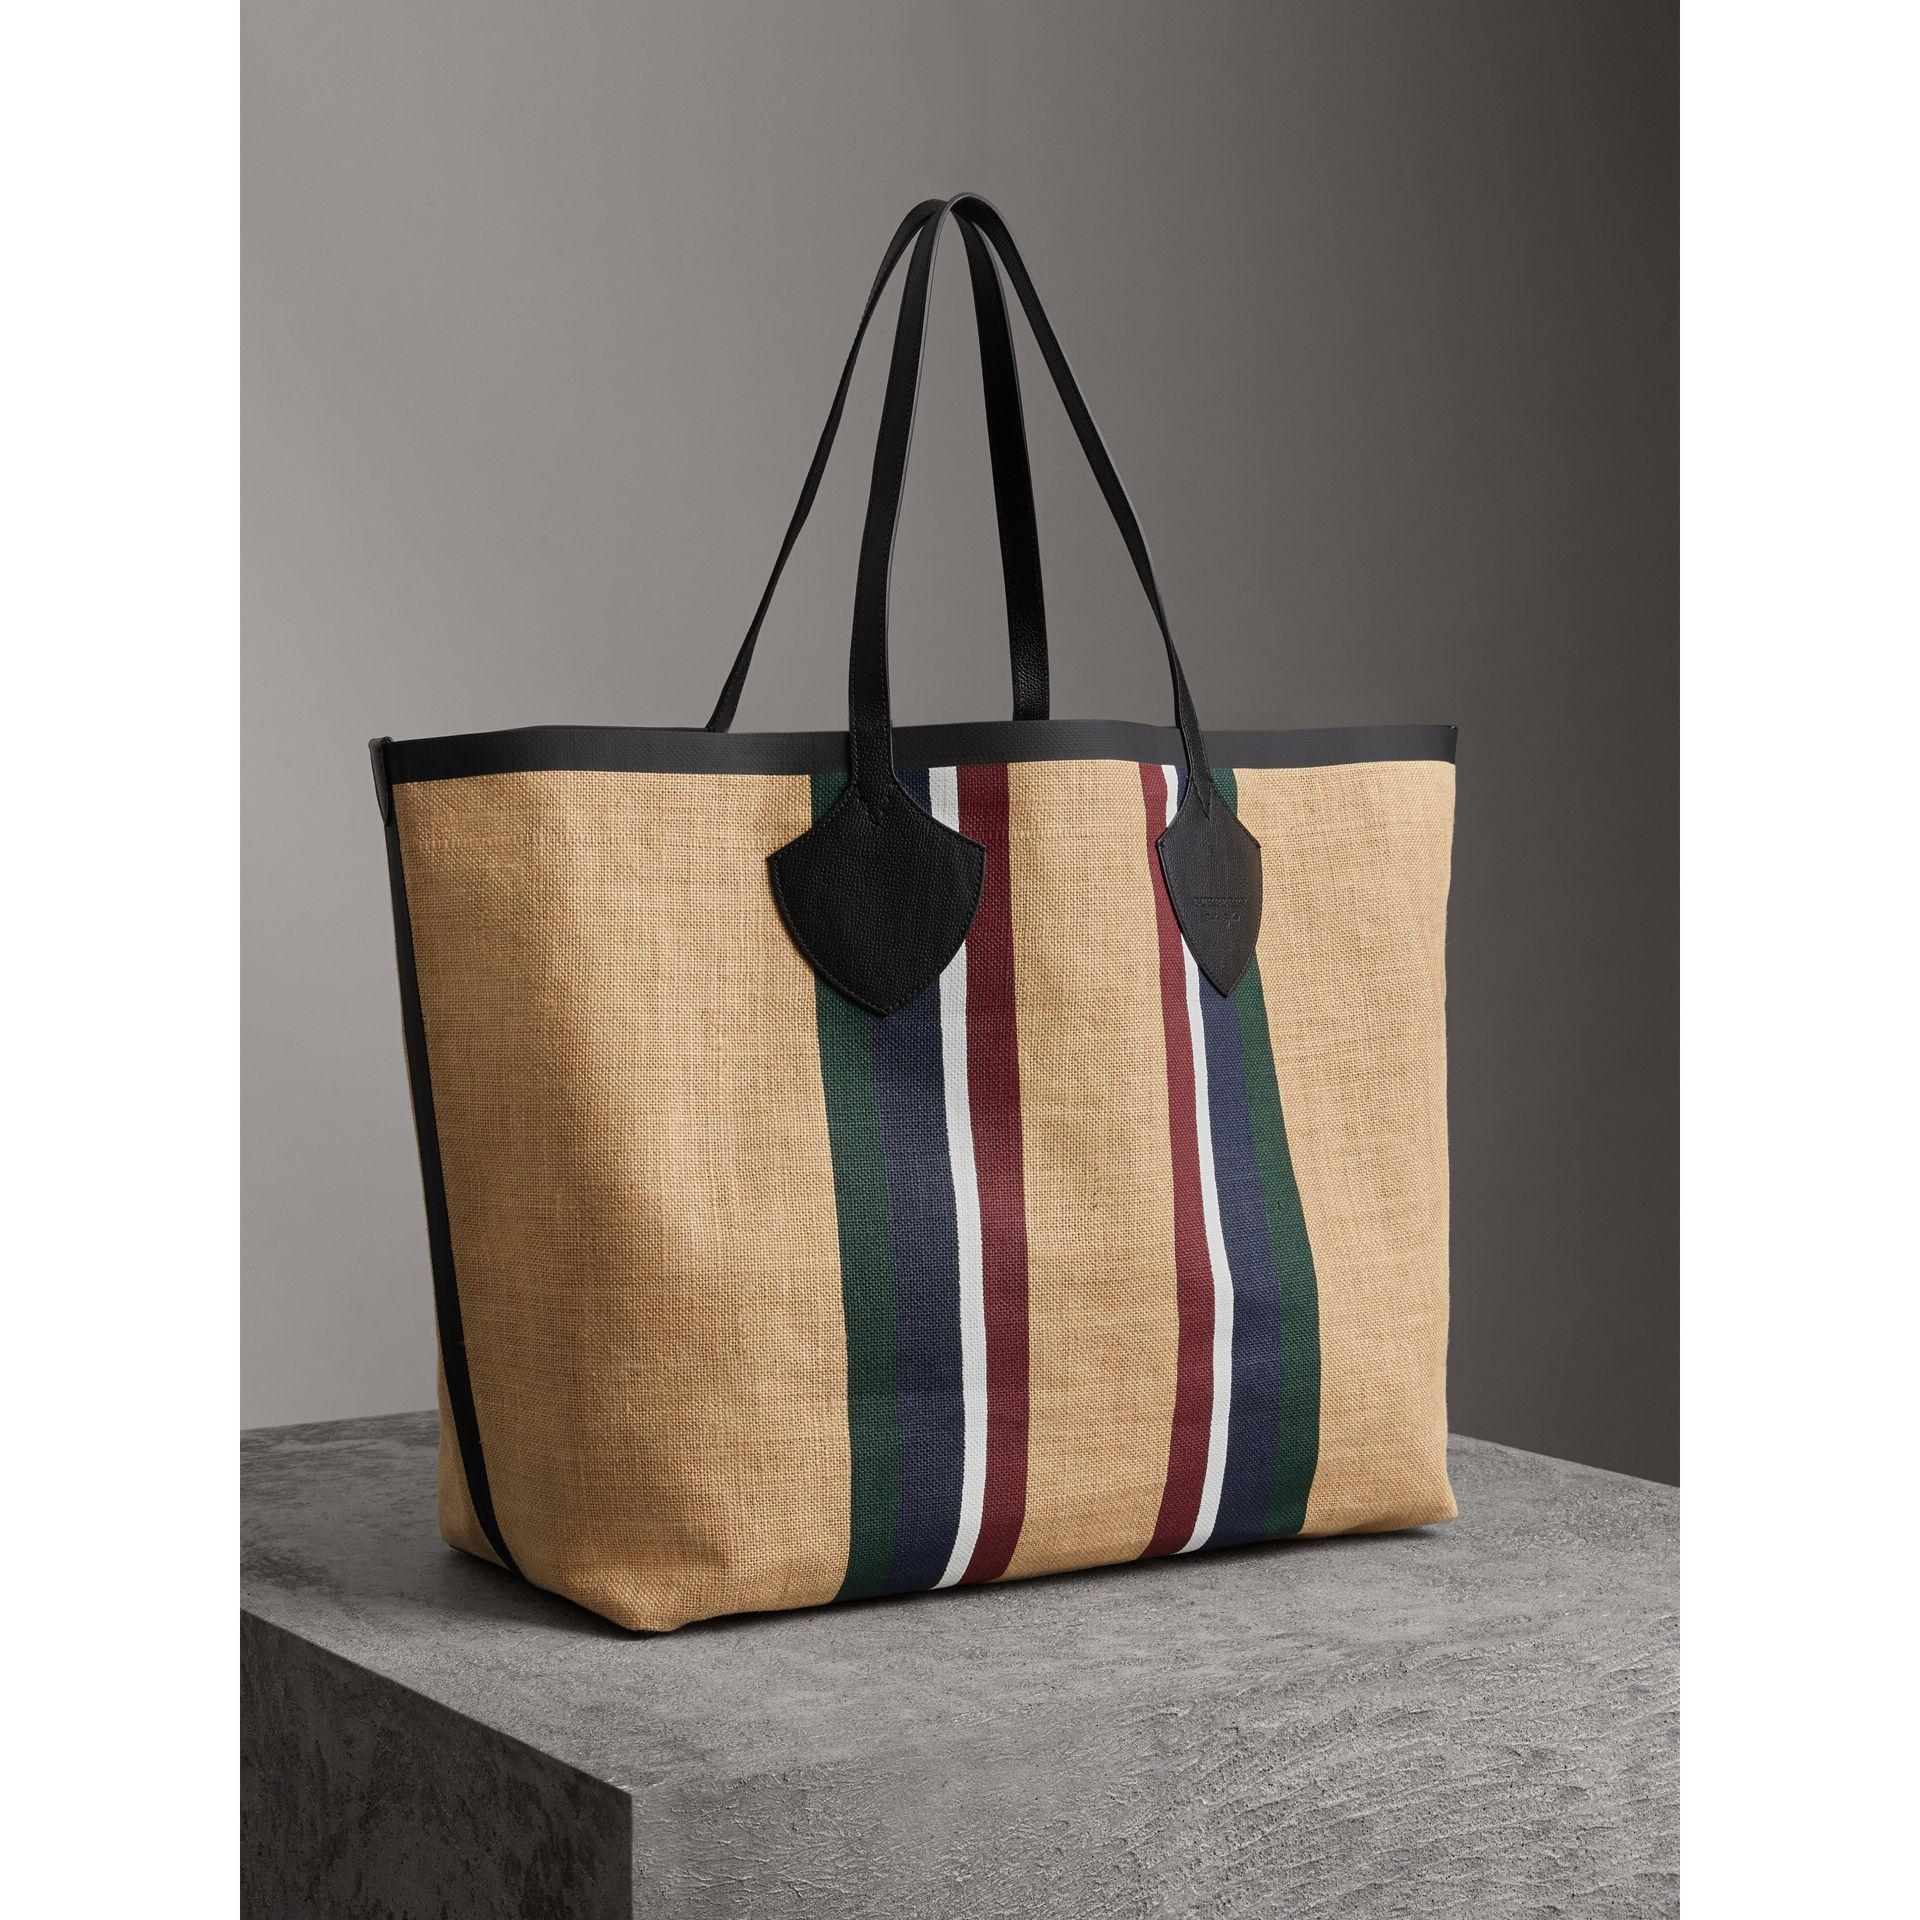 6dde5339a651 Lyst - Burberry The Giant Tote In Striped Jute in Black